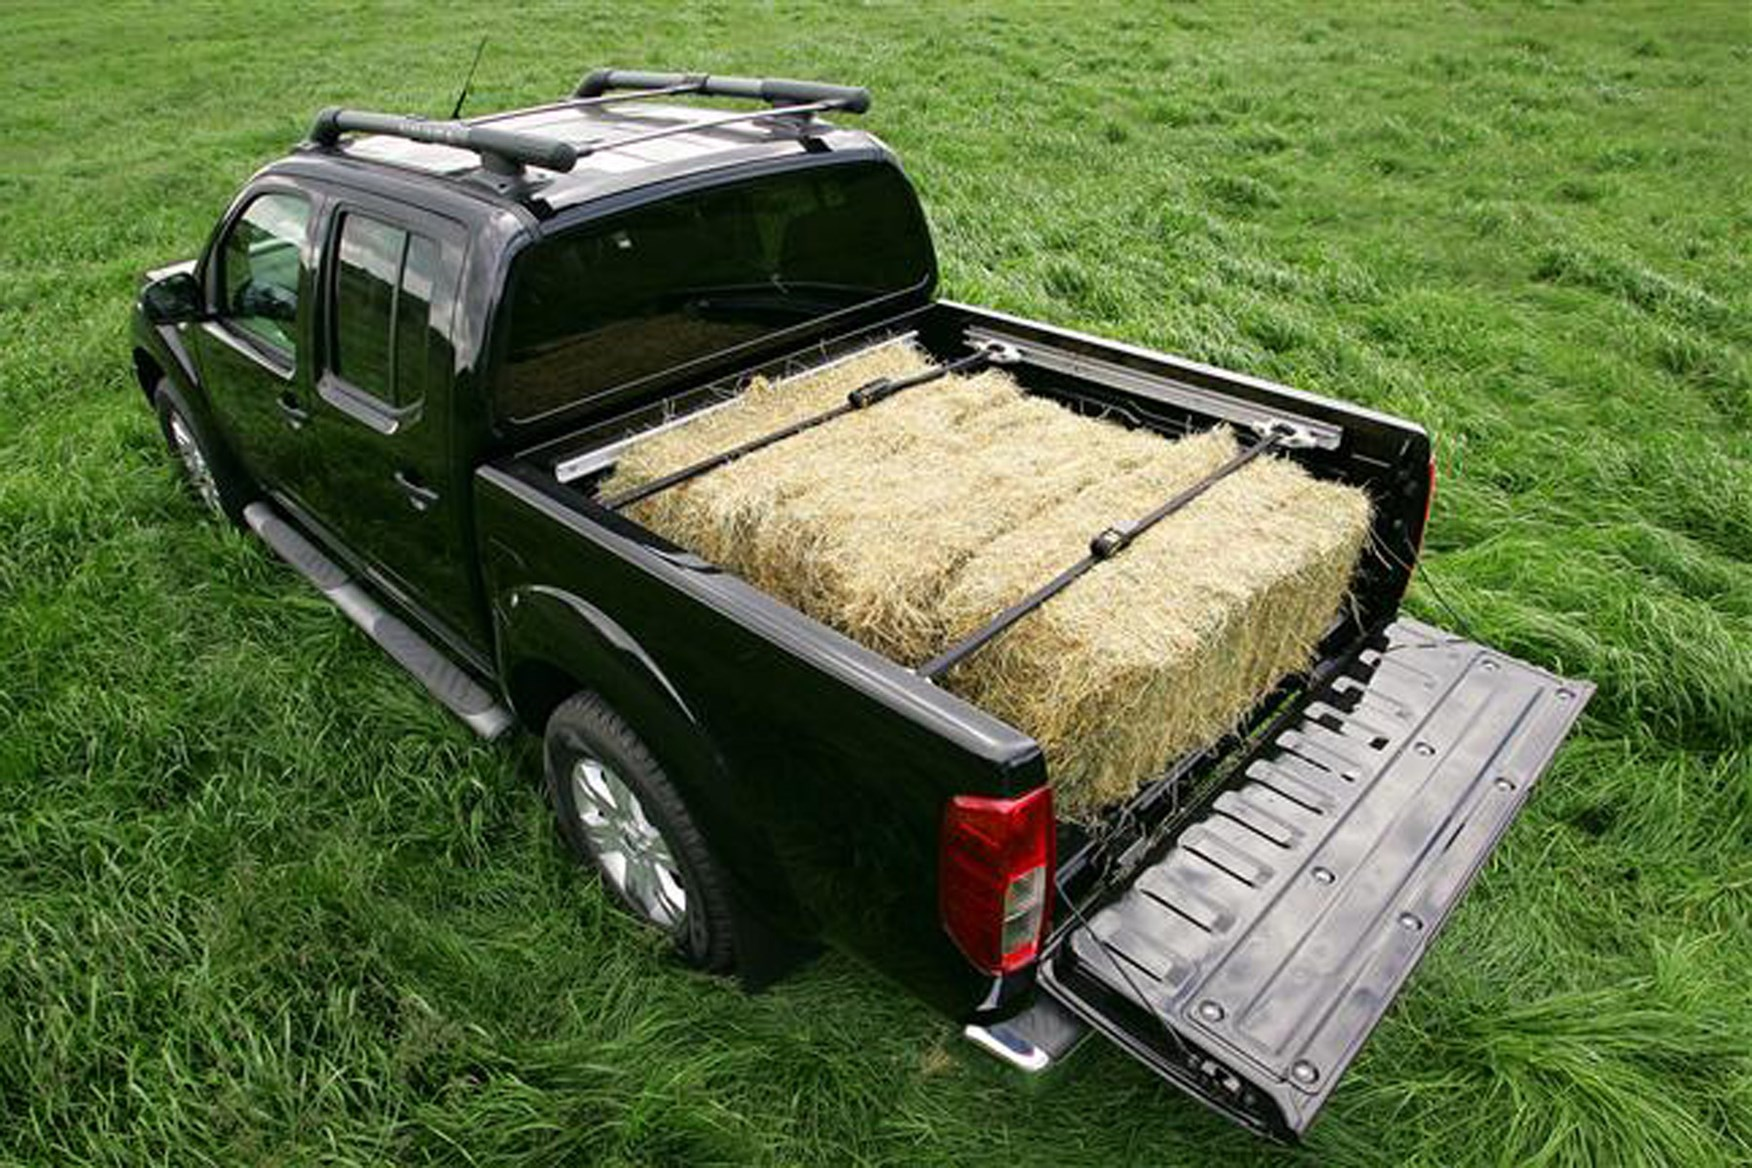 Nissan Navara 2005-2015 review on Parkers Vans - load area and payload